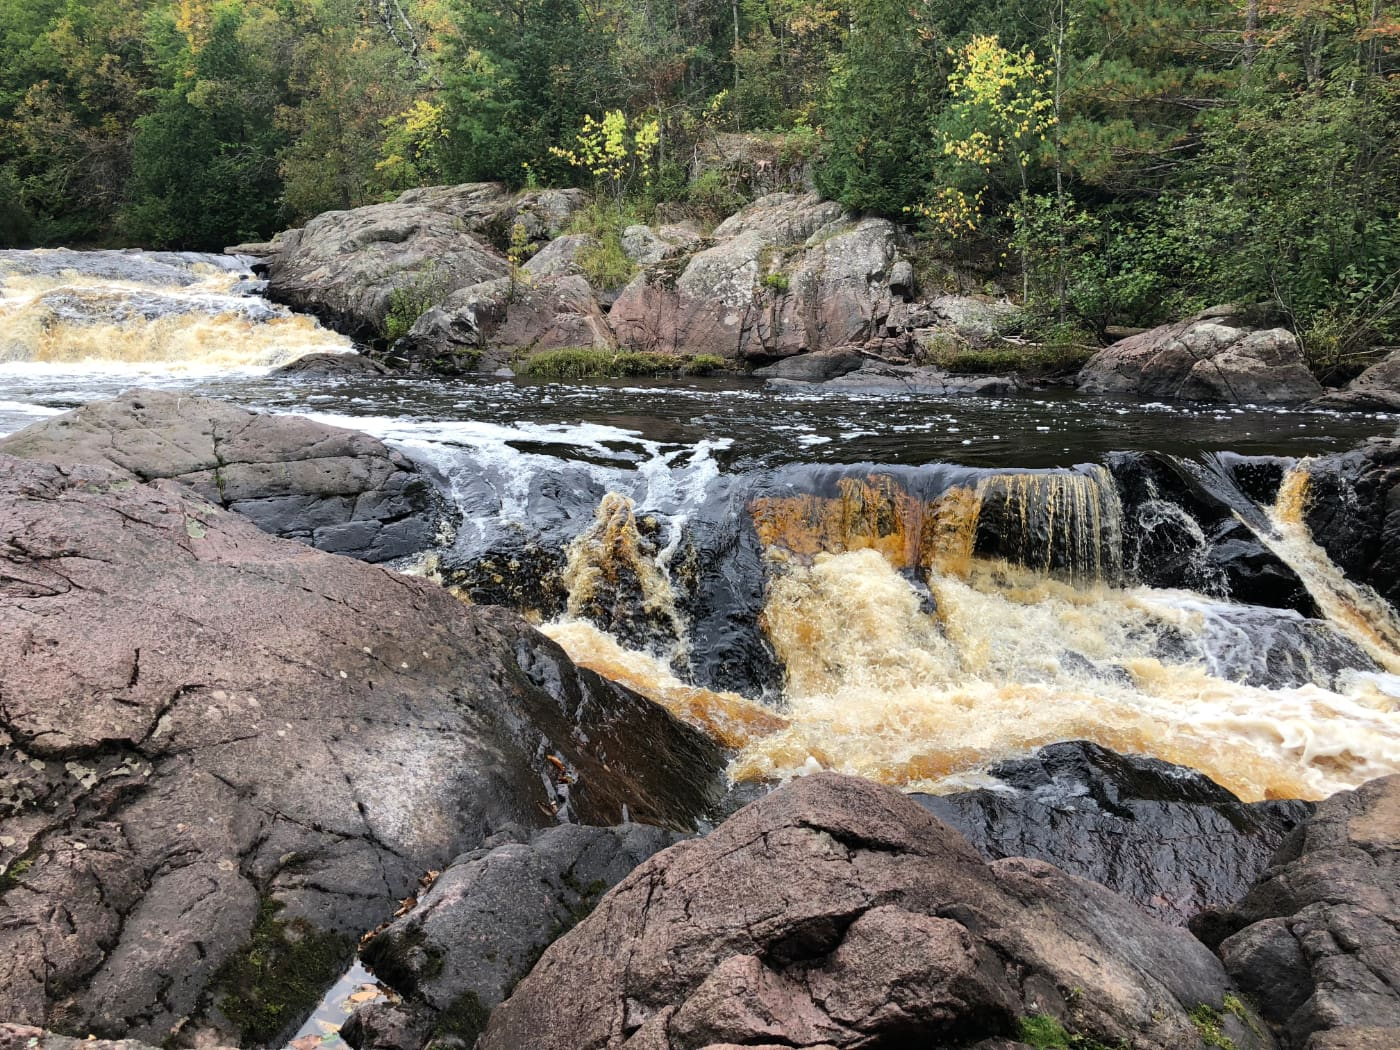 brown water cascades over large boulders in rapid river